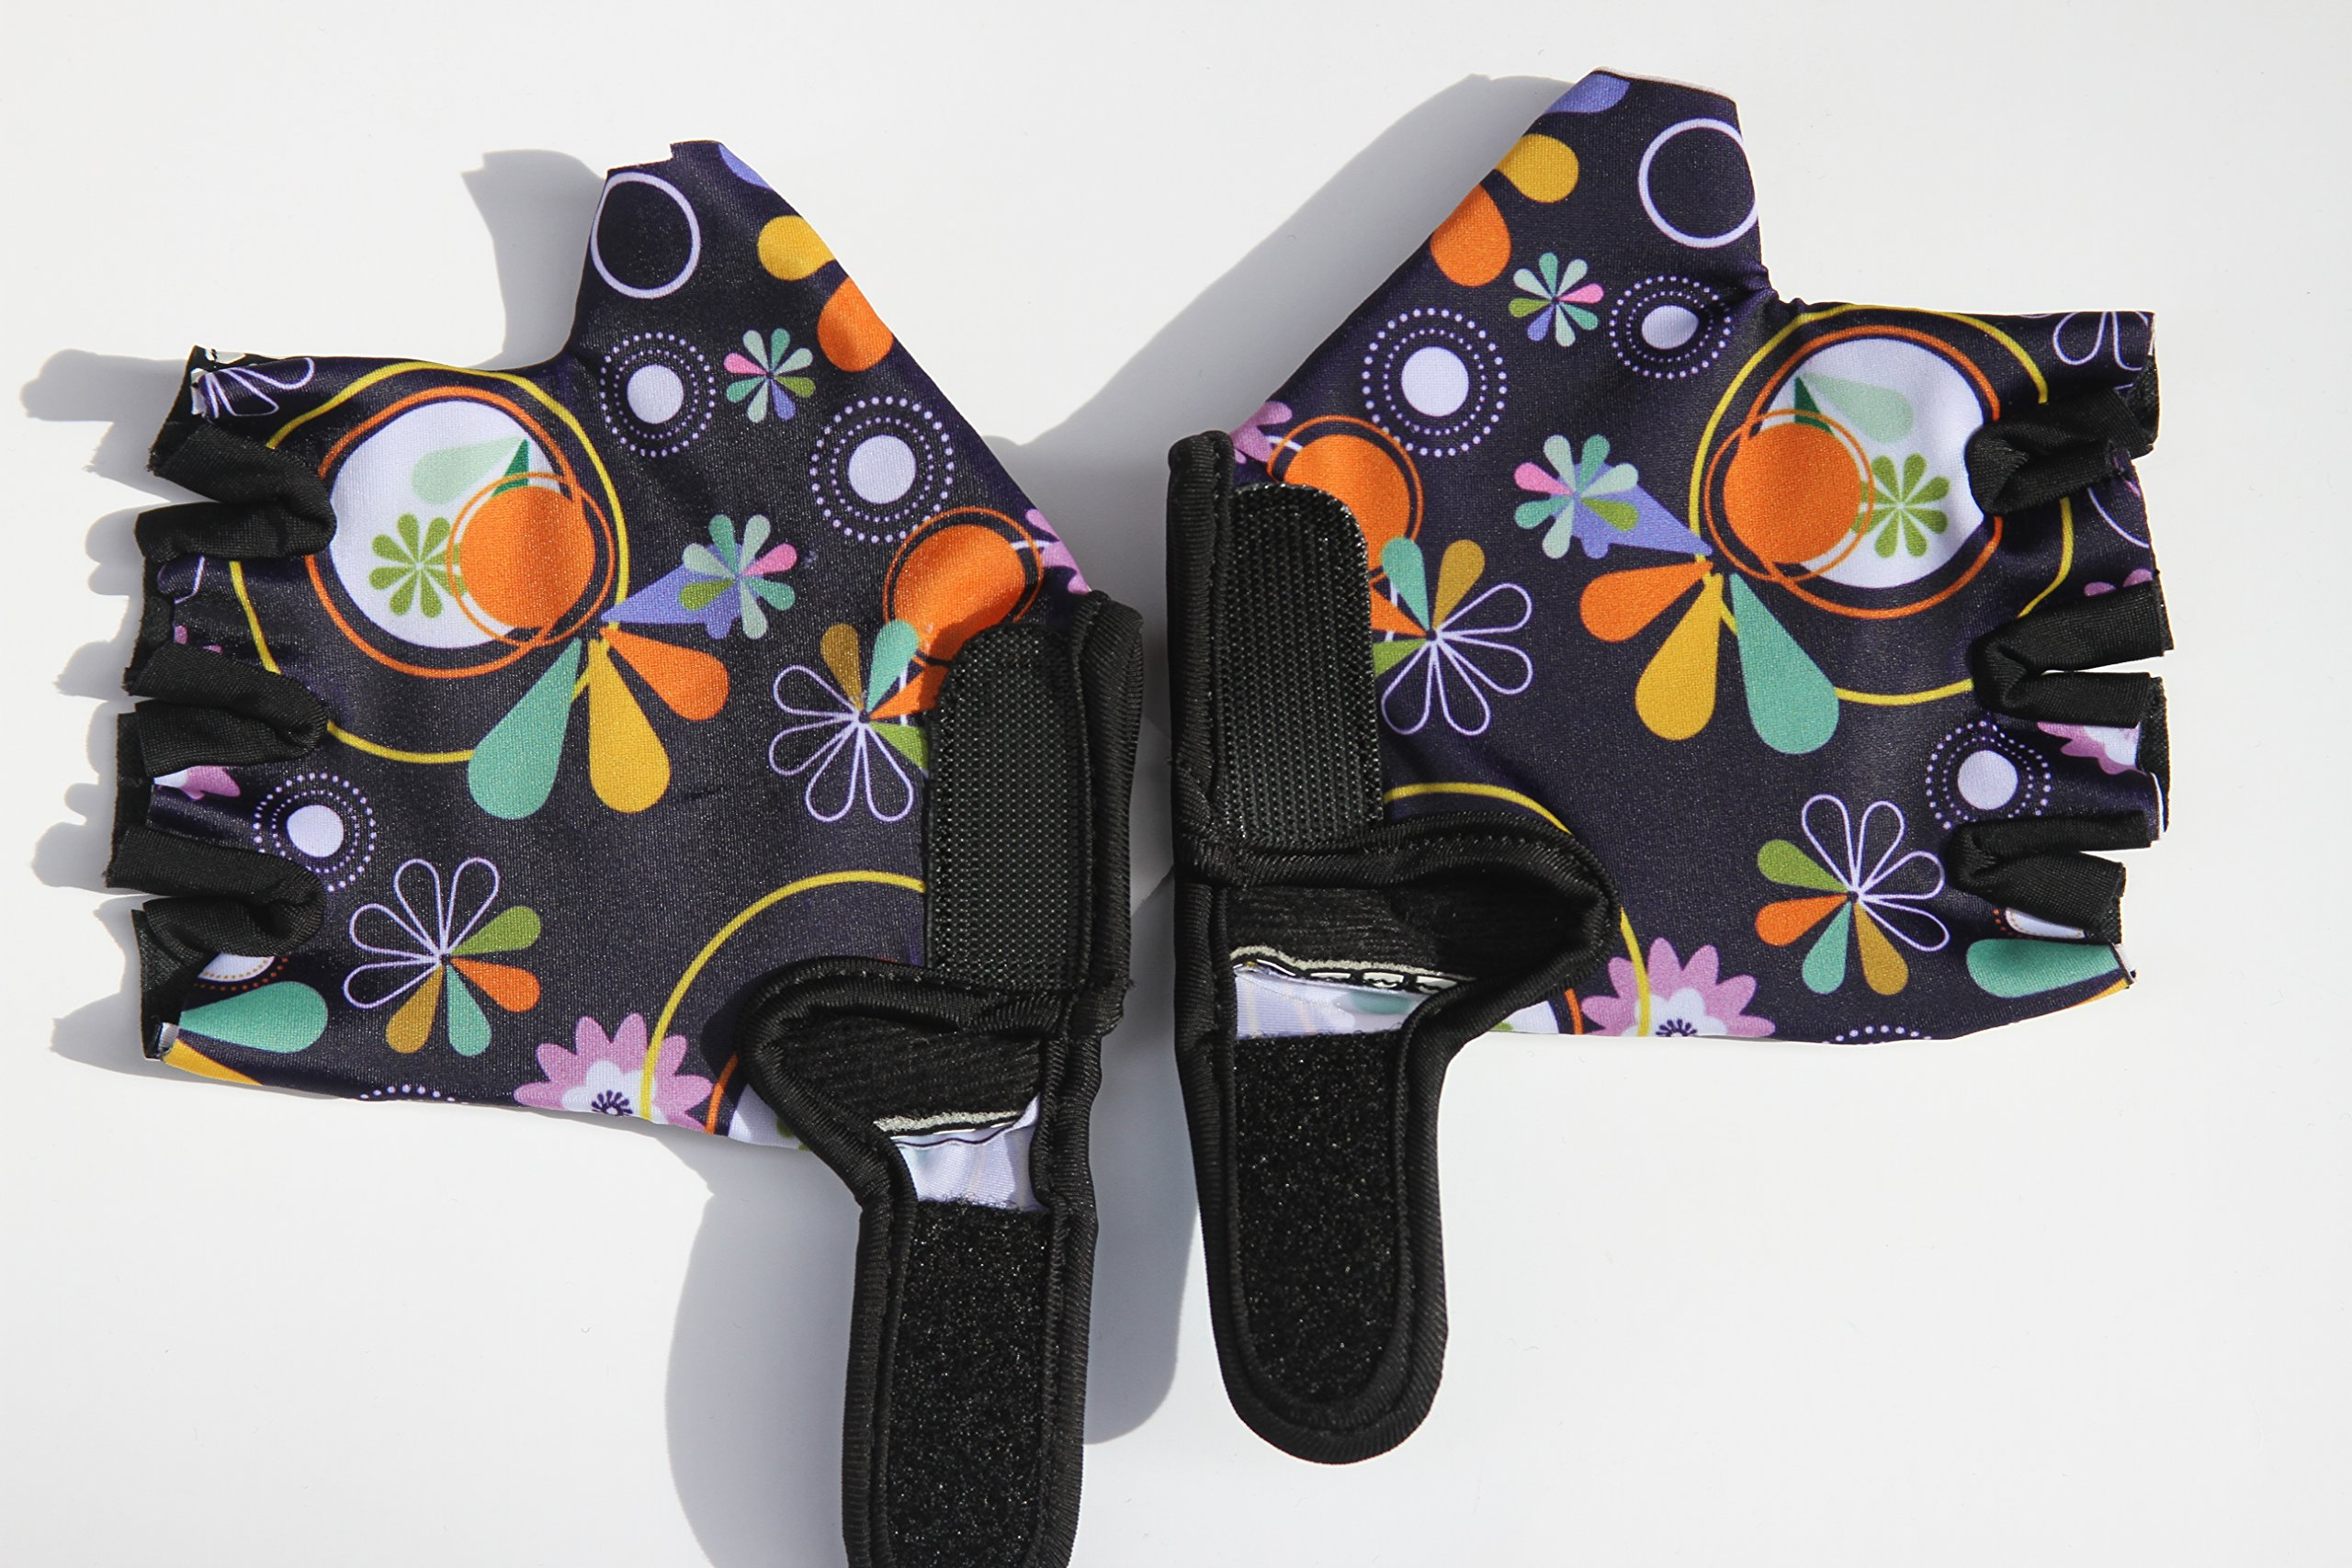 HANG Monkey Bars Gloves With Grip Control (Flowers) For children 5 and 6 years old by HANG (Image #2)